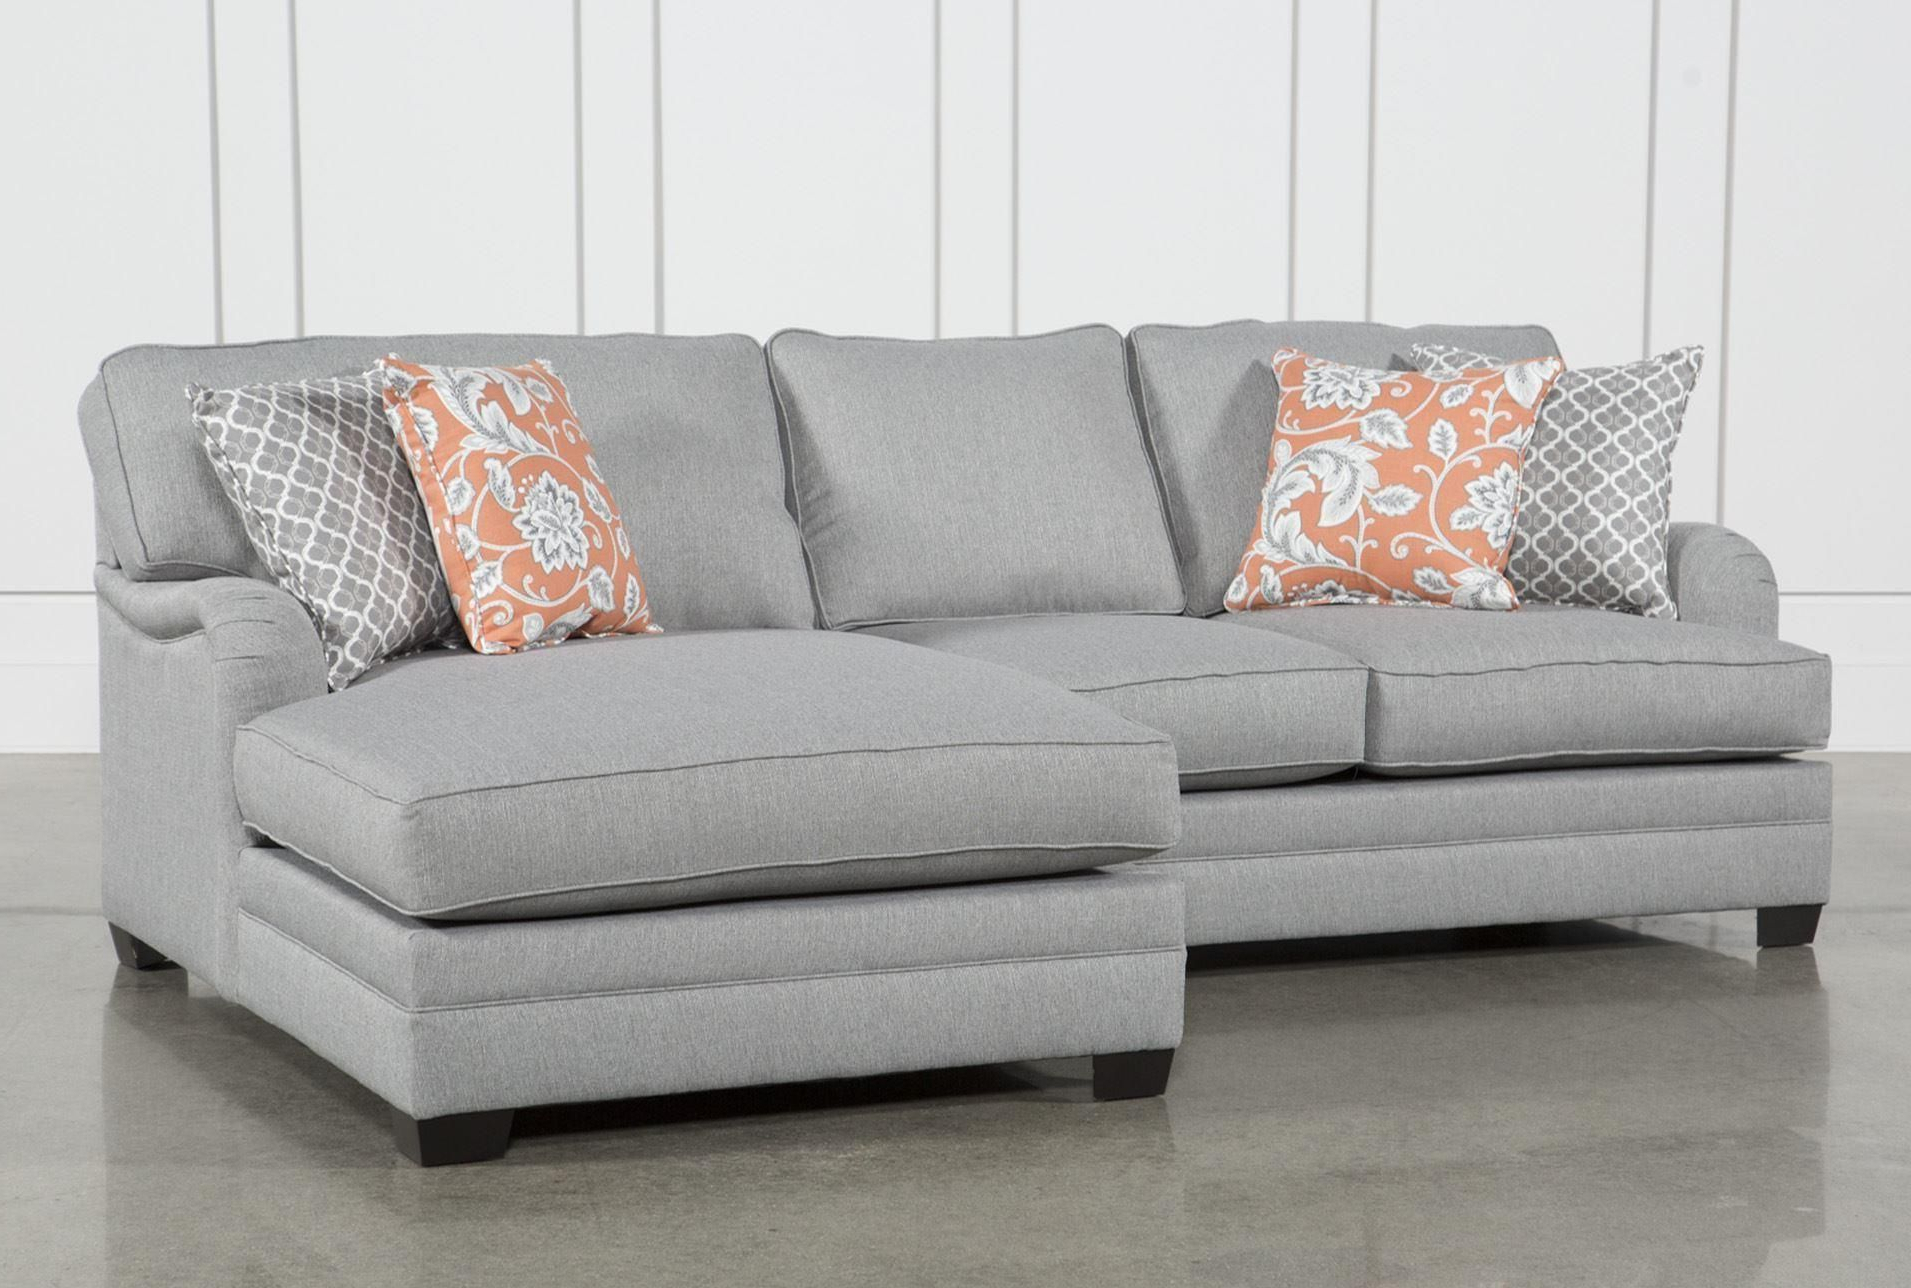 Preferred Mcculla Sofa Sectionals With Reversible Chaise For Marissa 2 Piece Sectional W/raf Chaise (Gallery 2 of 20)